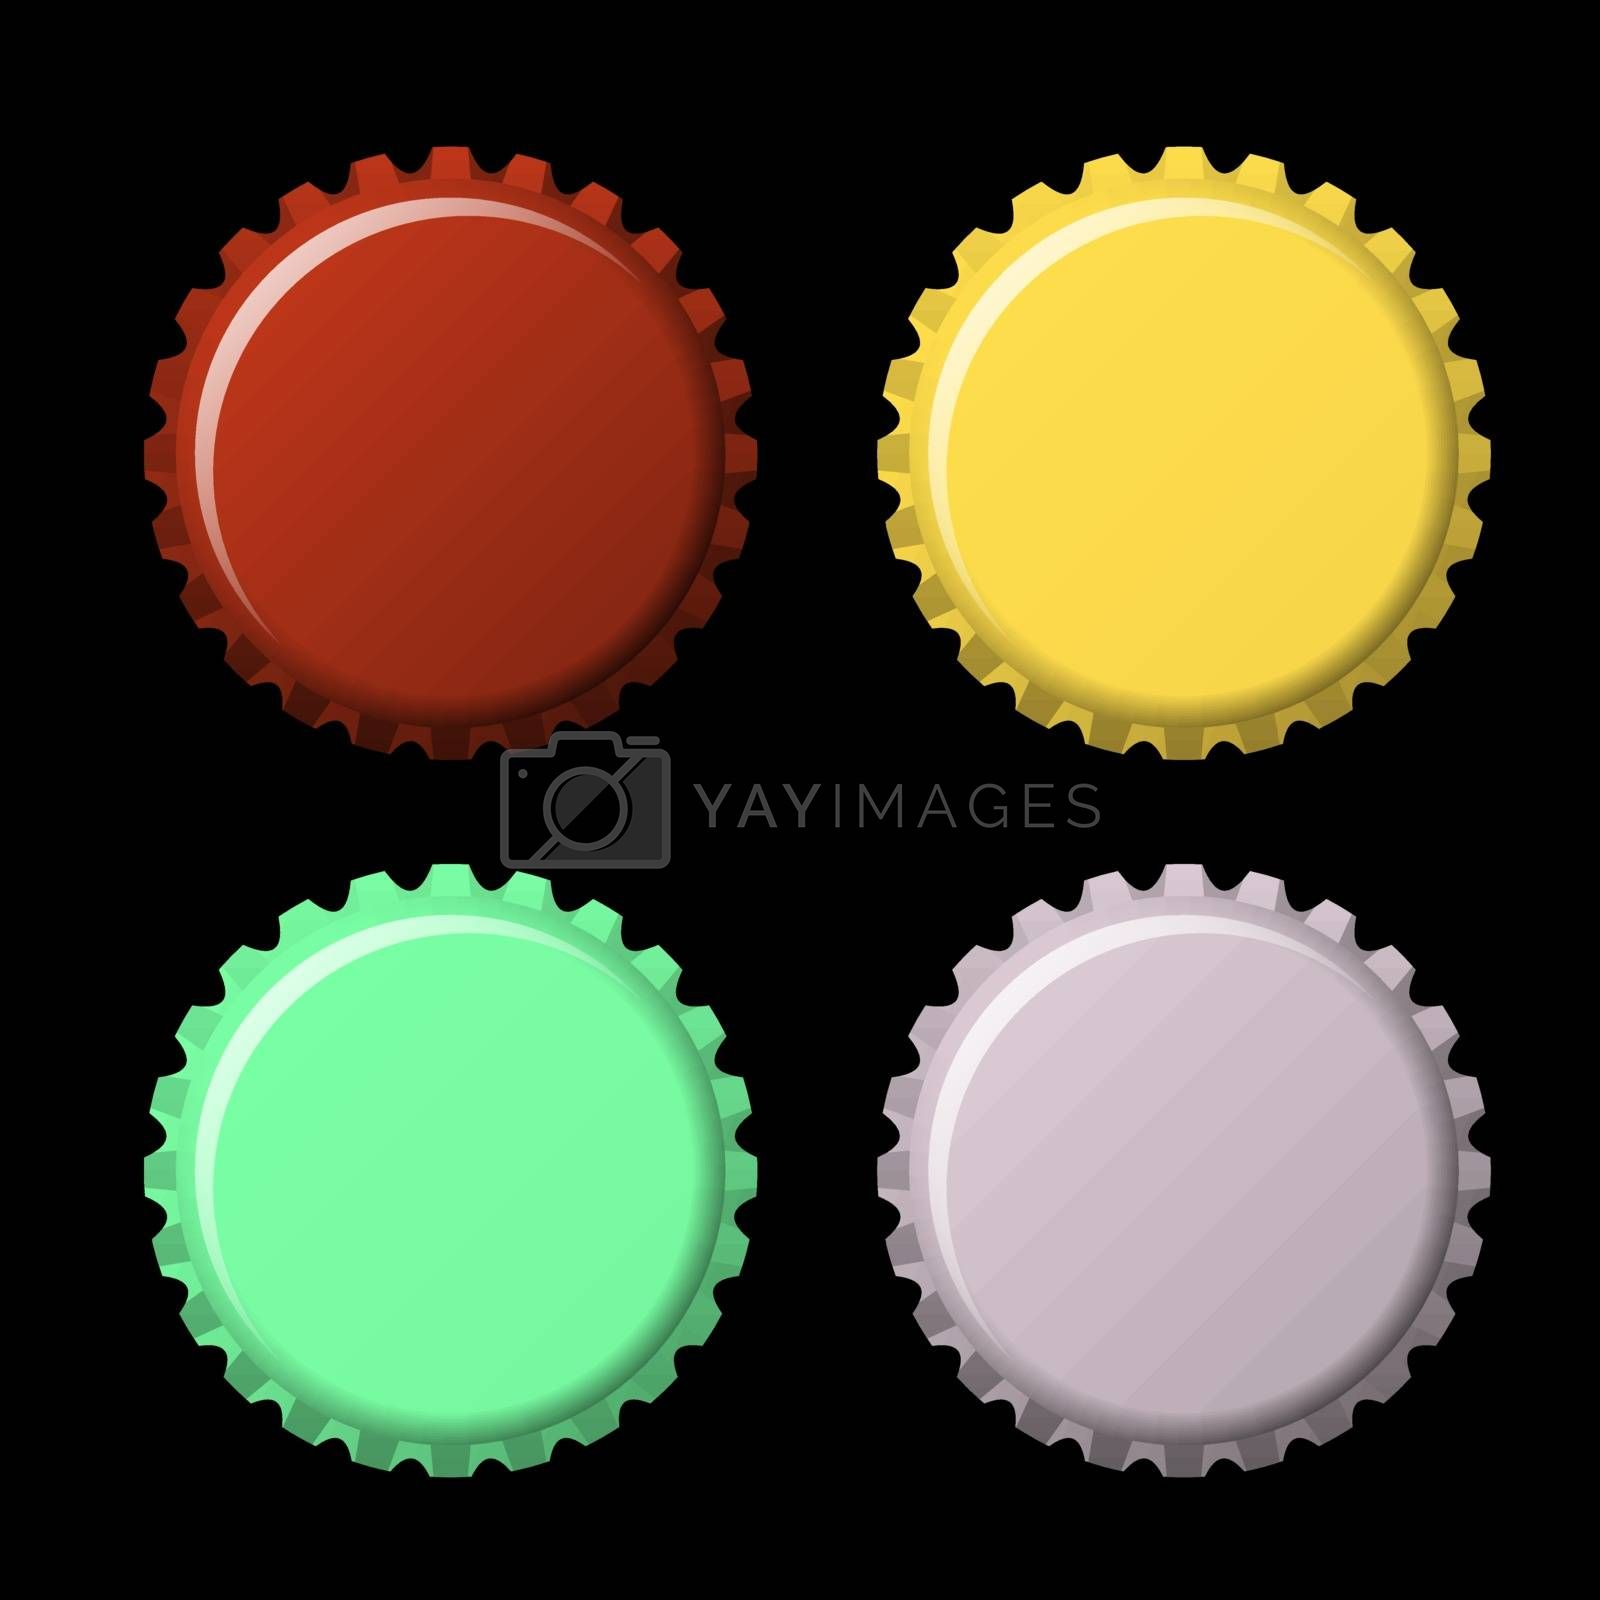 Set of bottle caps in colors isolated on black  background, vector illustration